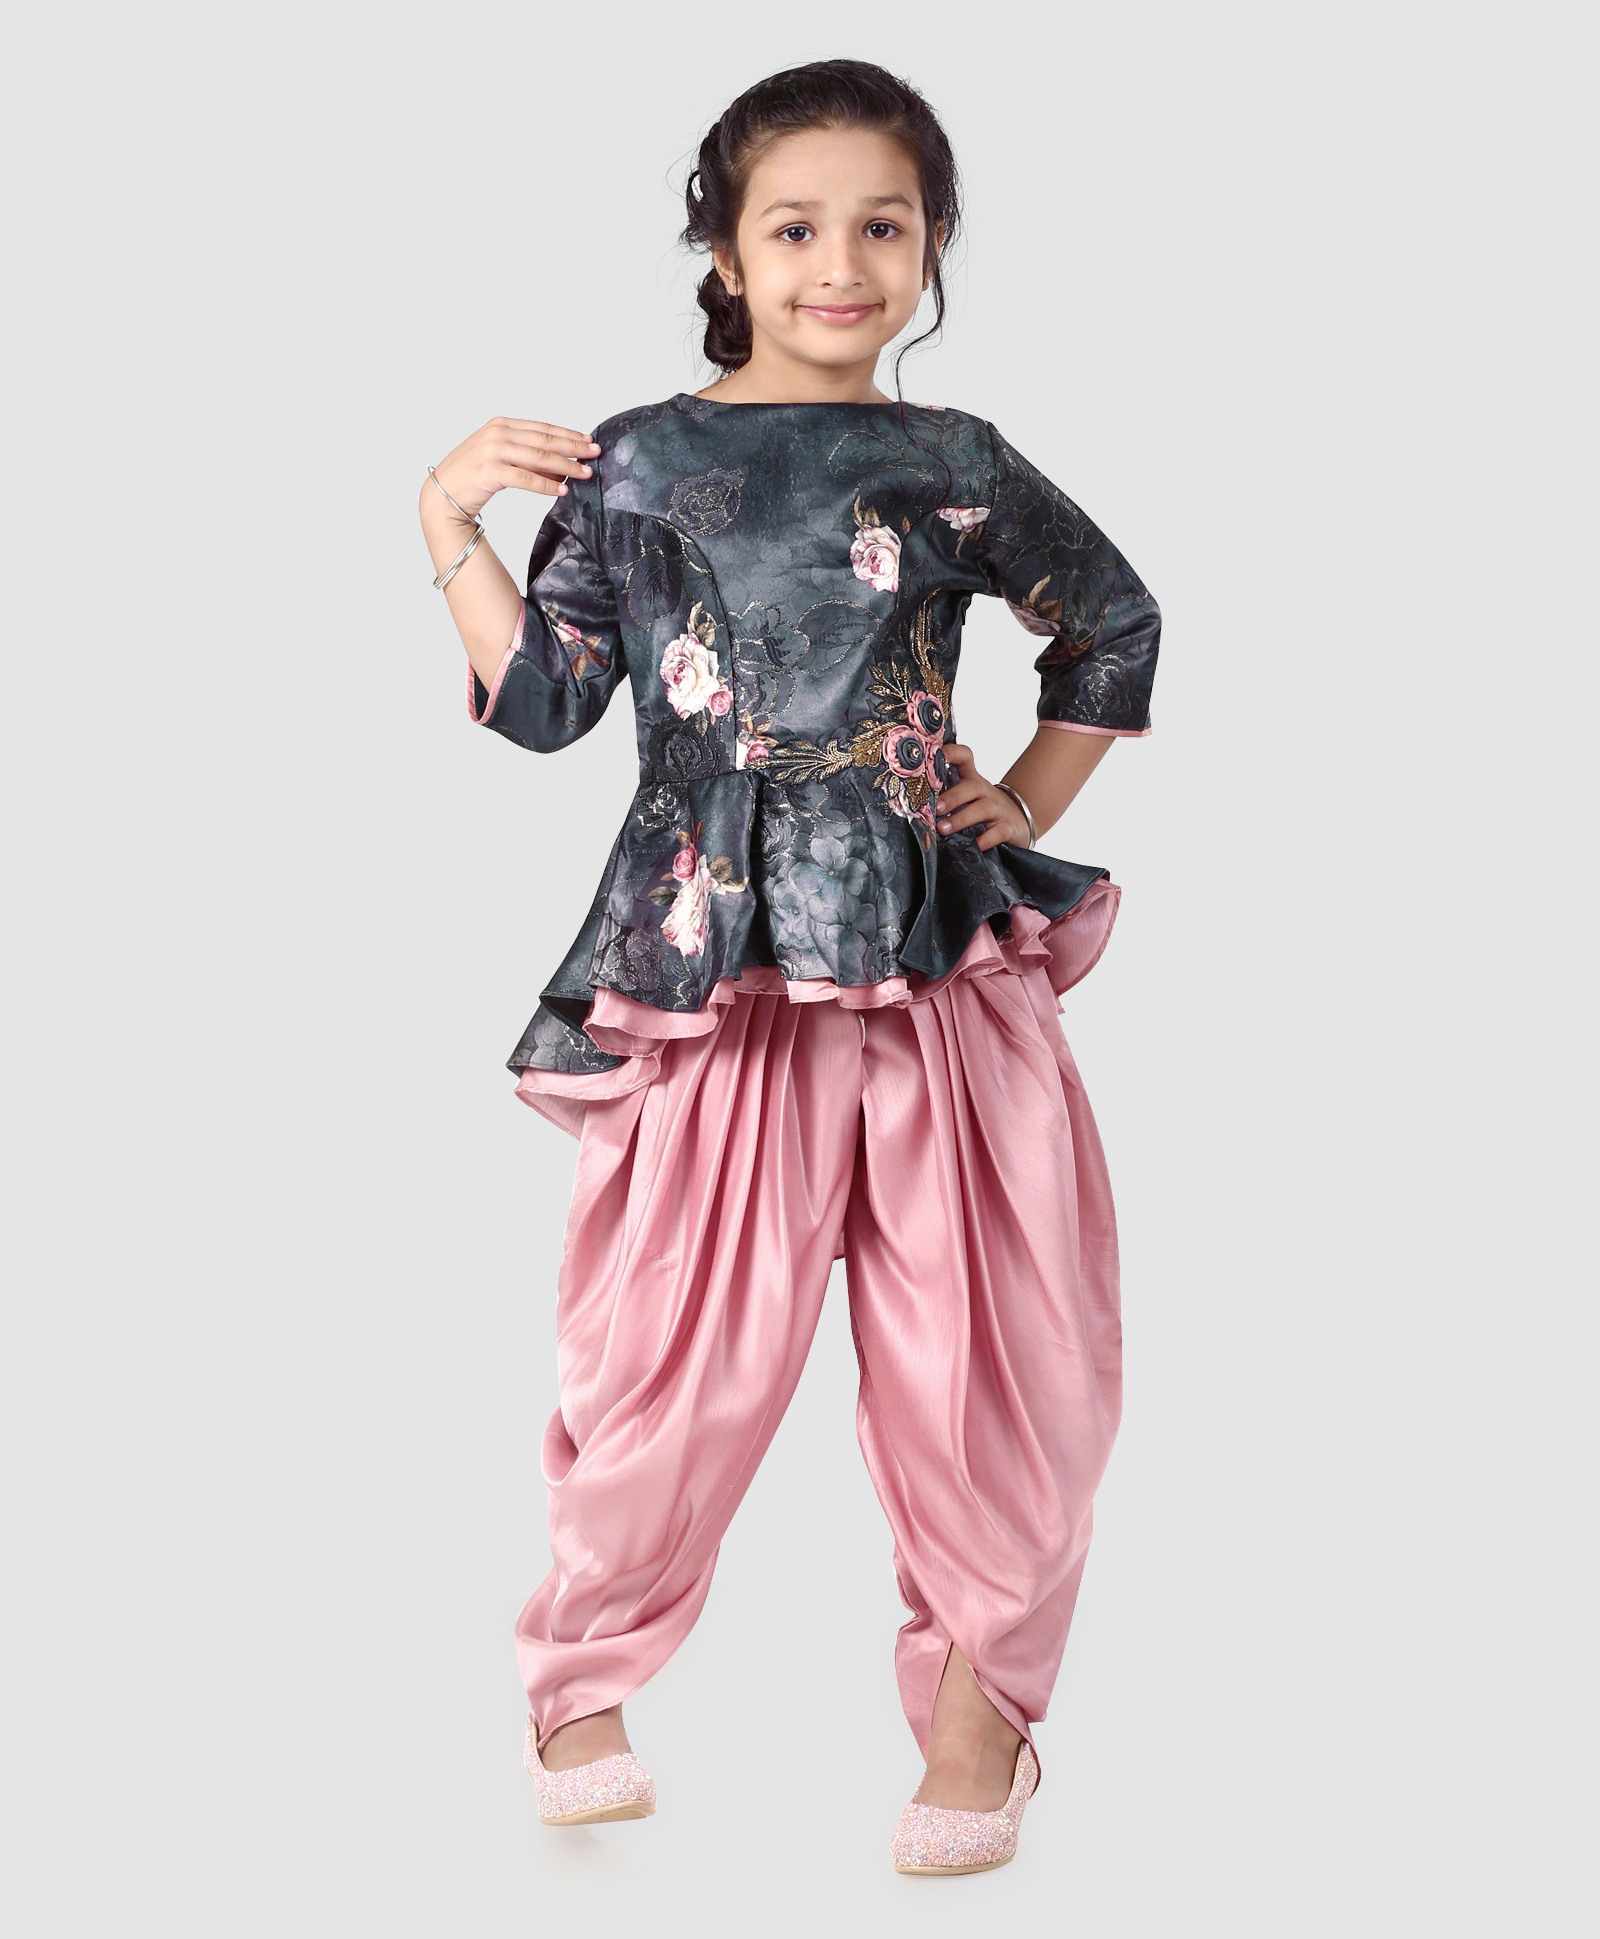 dc82bdb9 Buy Enfance Rose Flower Print Three Fourth Sleeves Top & Dhoti Set Navy  Blue for Girls (2-3 Years) Online in India, Shop at FirstCry.com - 2670775